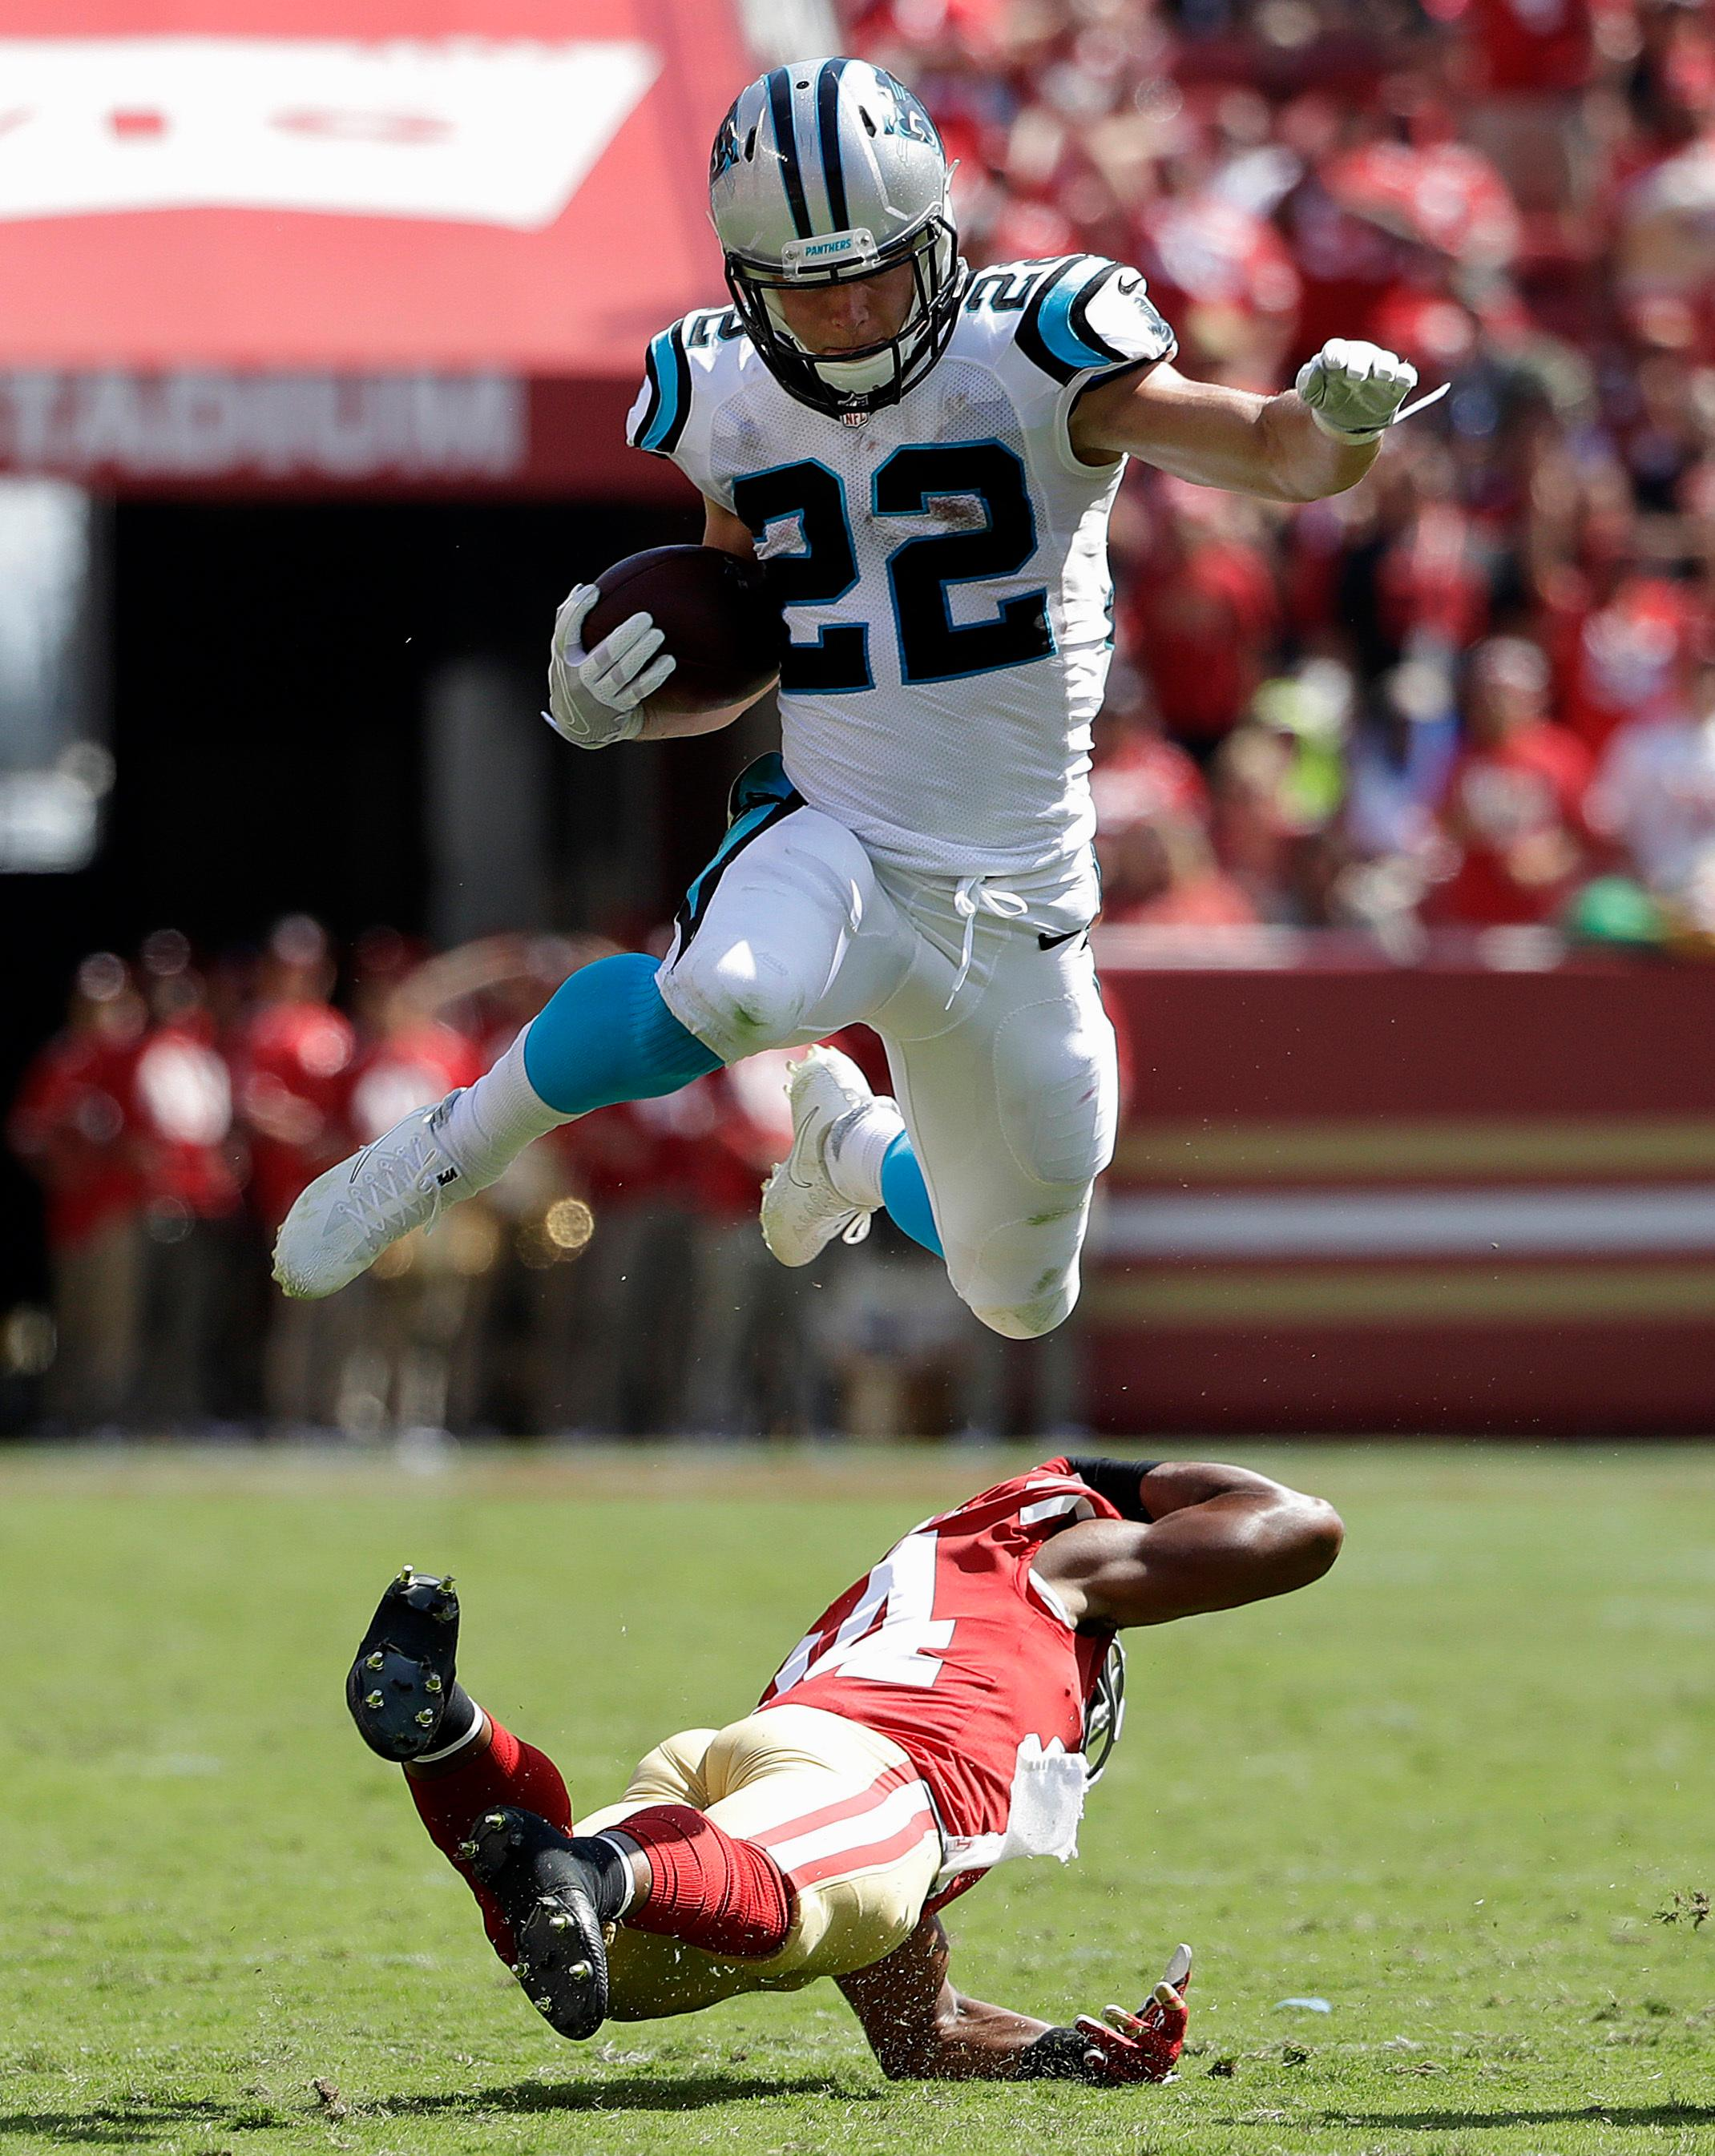 Carolina Panthers running back Christian McCaffrey (22) jumps over San Francisco 49ers defensive back K'Waun Williams (24) during the first half of an NFL football game in Santa Clara, Calif., Sunday, Sept. 10, 2017. (AP Photo/Marcio Jose Sanchez)